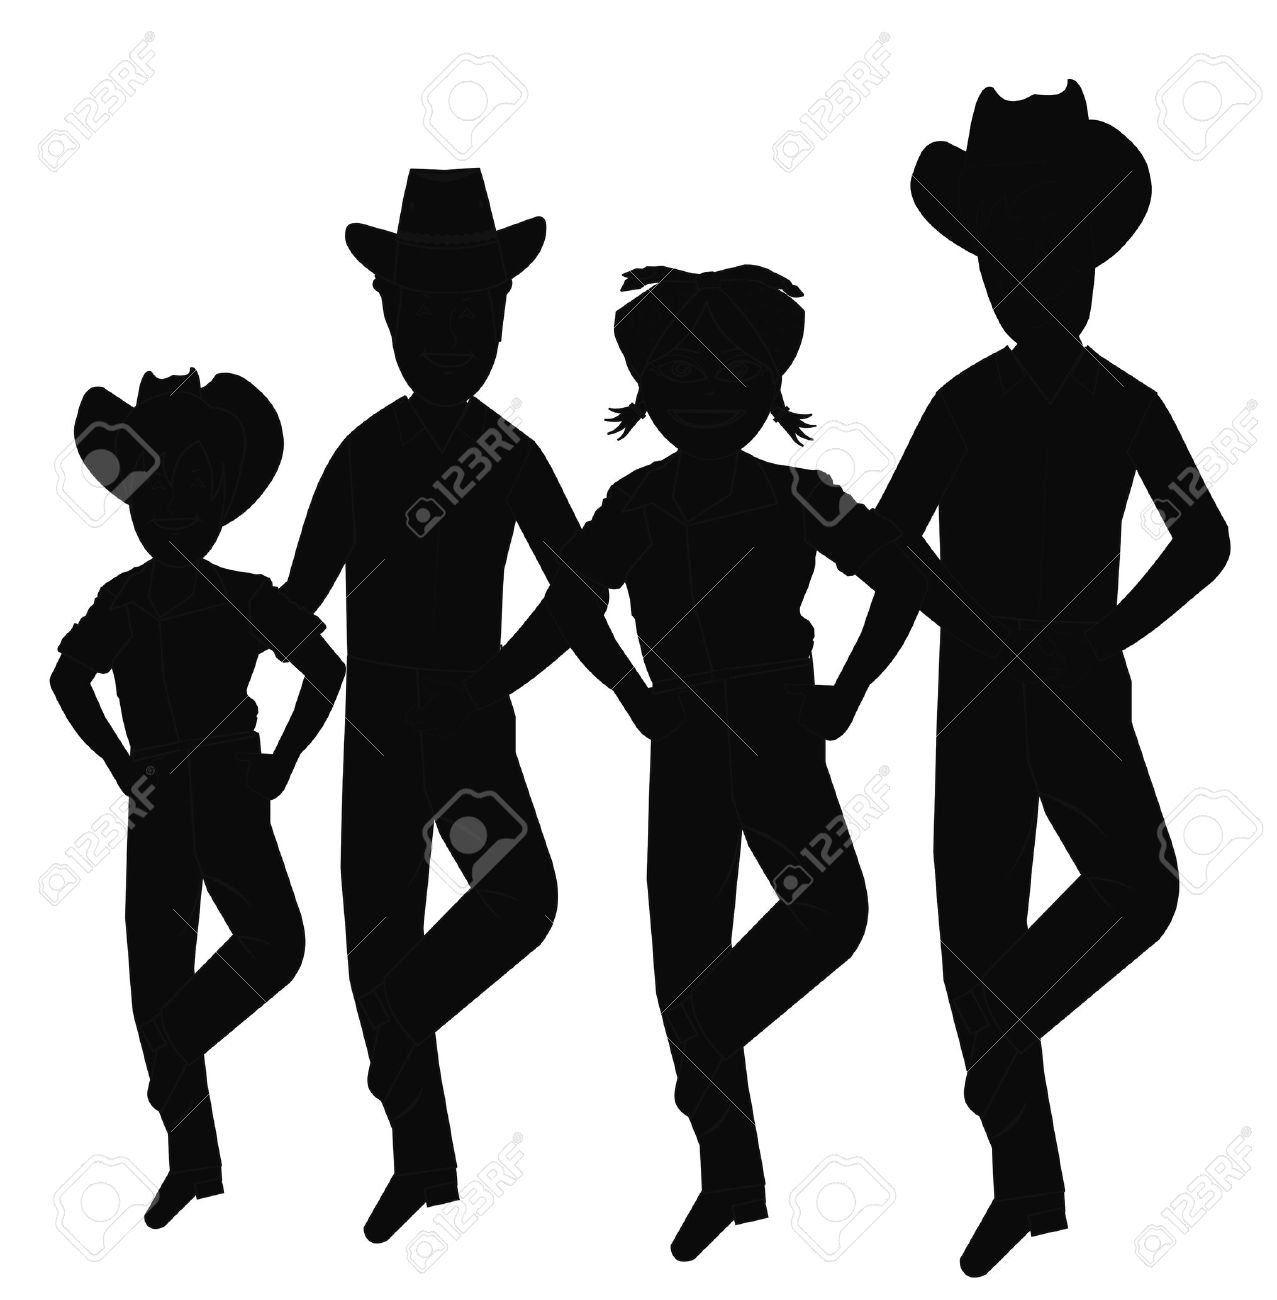 square dance silhouette clip art at getdrawings com free for rh getdrawings com free dance team clipart dance drill team clipart